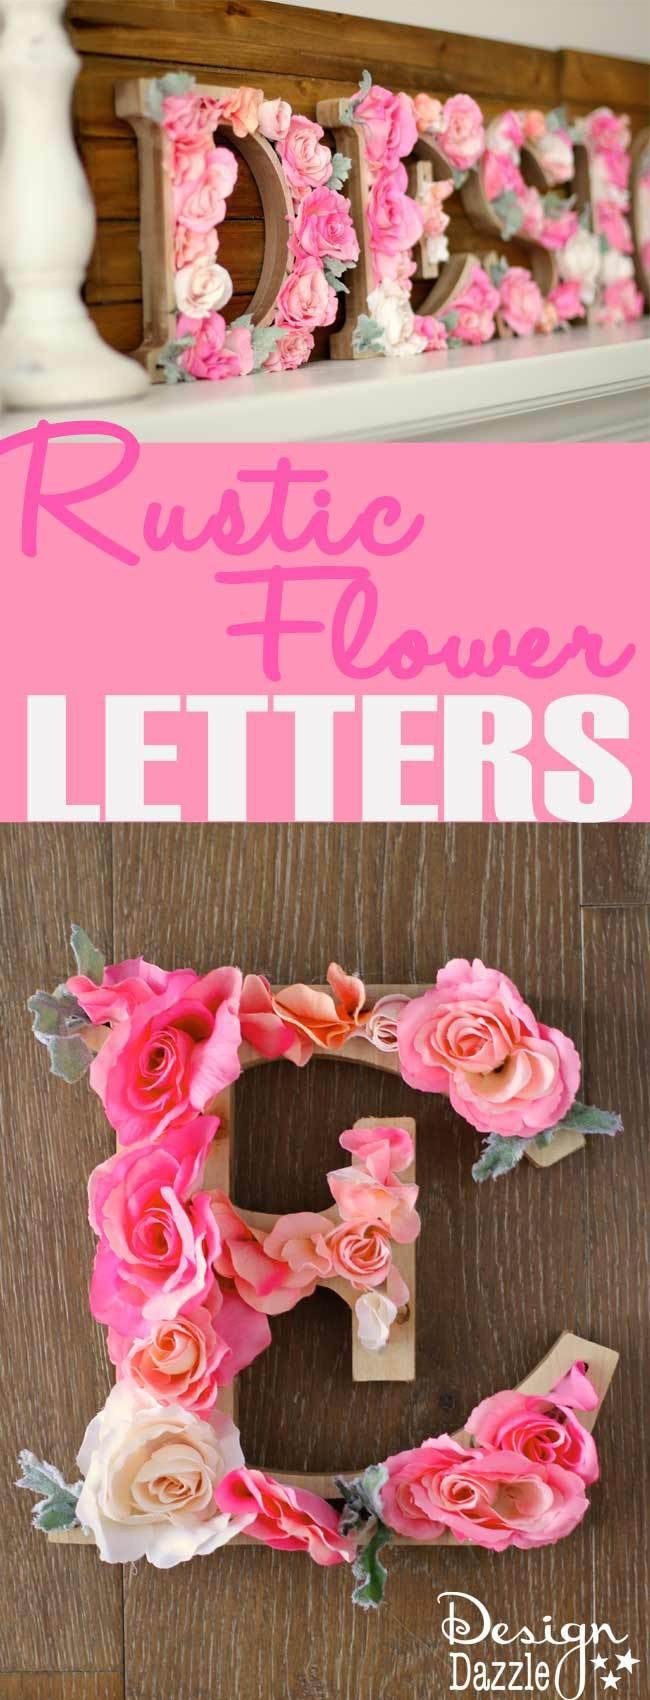 Make your own Rustic Flower Letters. Sweet idea for a nursery, bedroom or craft room. Tutorial on Design Dazzle. #MichaelsMakers